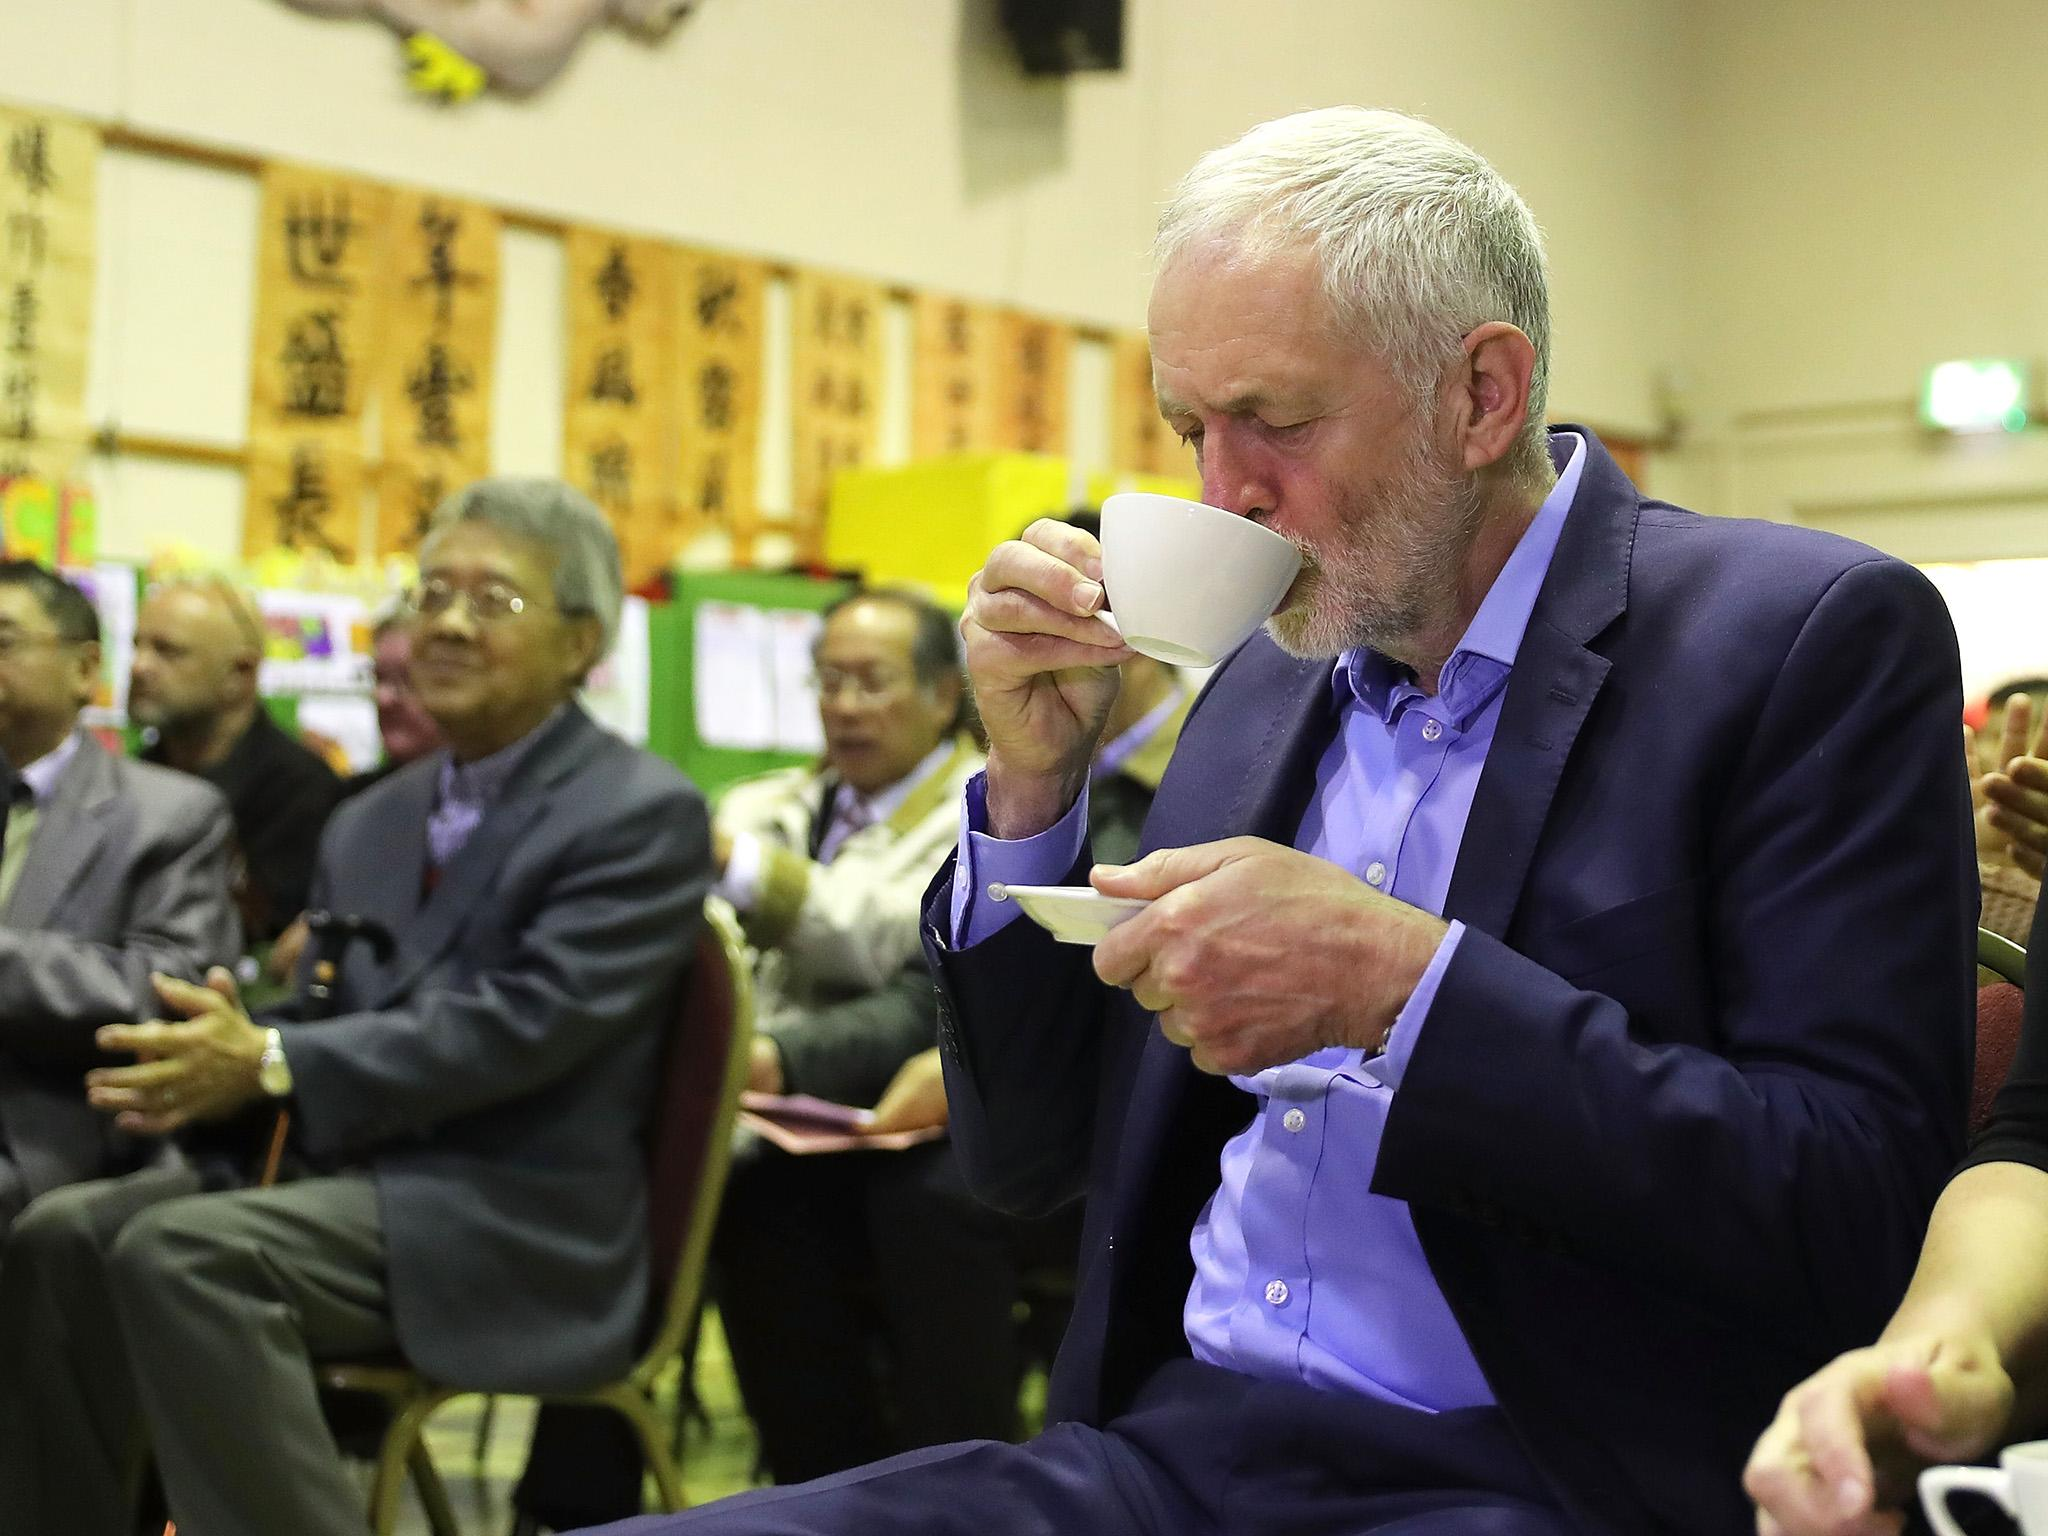 independent.co.uk - Labour is surging in the polls - and it's all because the media is finally giving Jeremy Corbyn impartial coverage